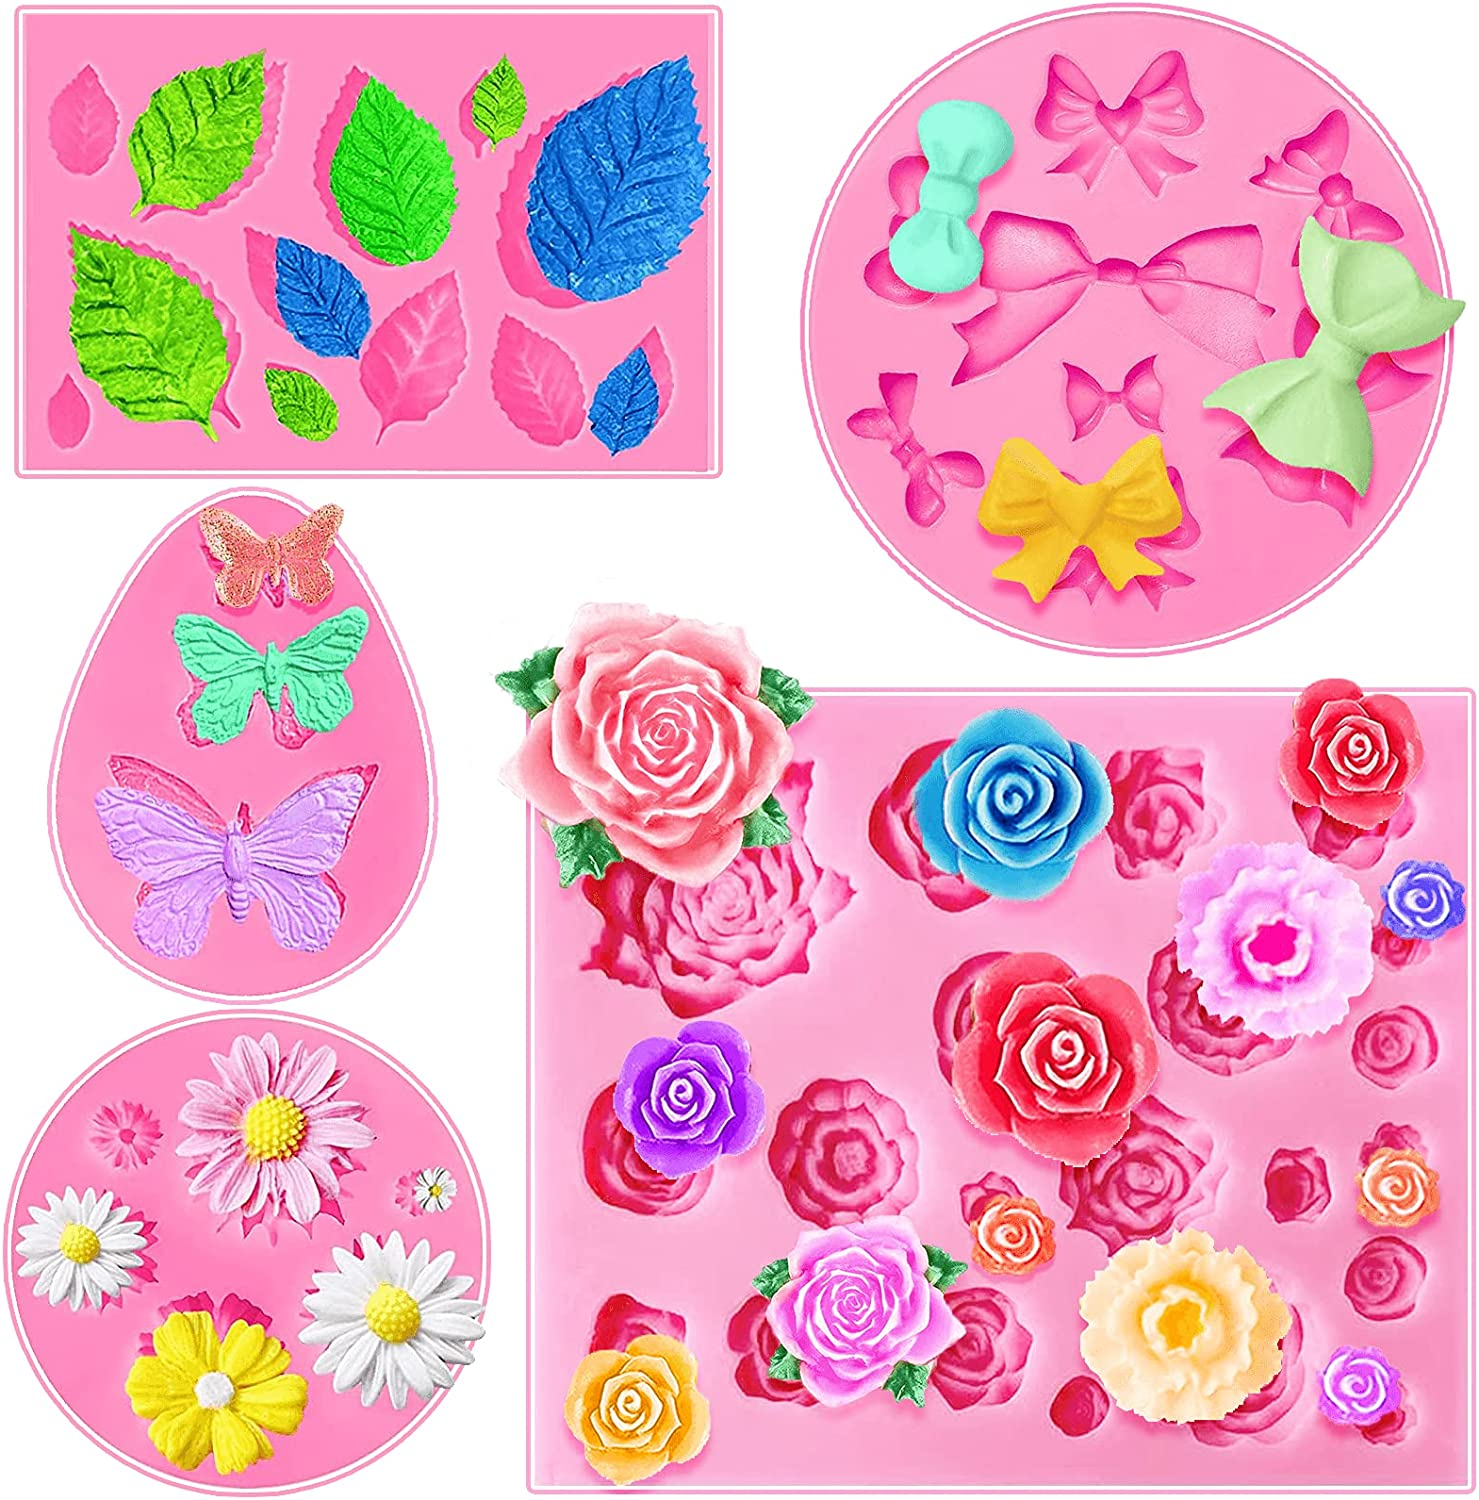 5 Pieces Fondant Molds Butterfly Mold Mini Flowers and 22 Cavity Rose Flowers and Leaves Fondant Candy Silicone Molds,Bowknot Silicone Mold for DIY Cake Decoration,Candy Chocolate Soap Wax Making